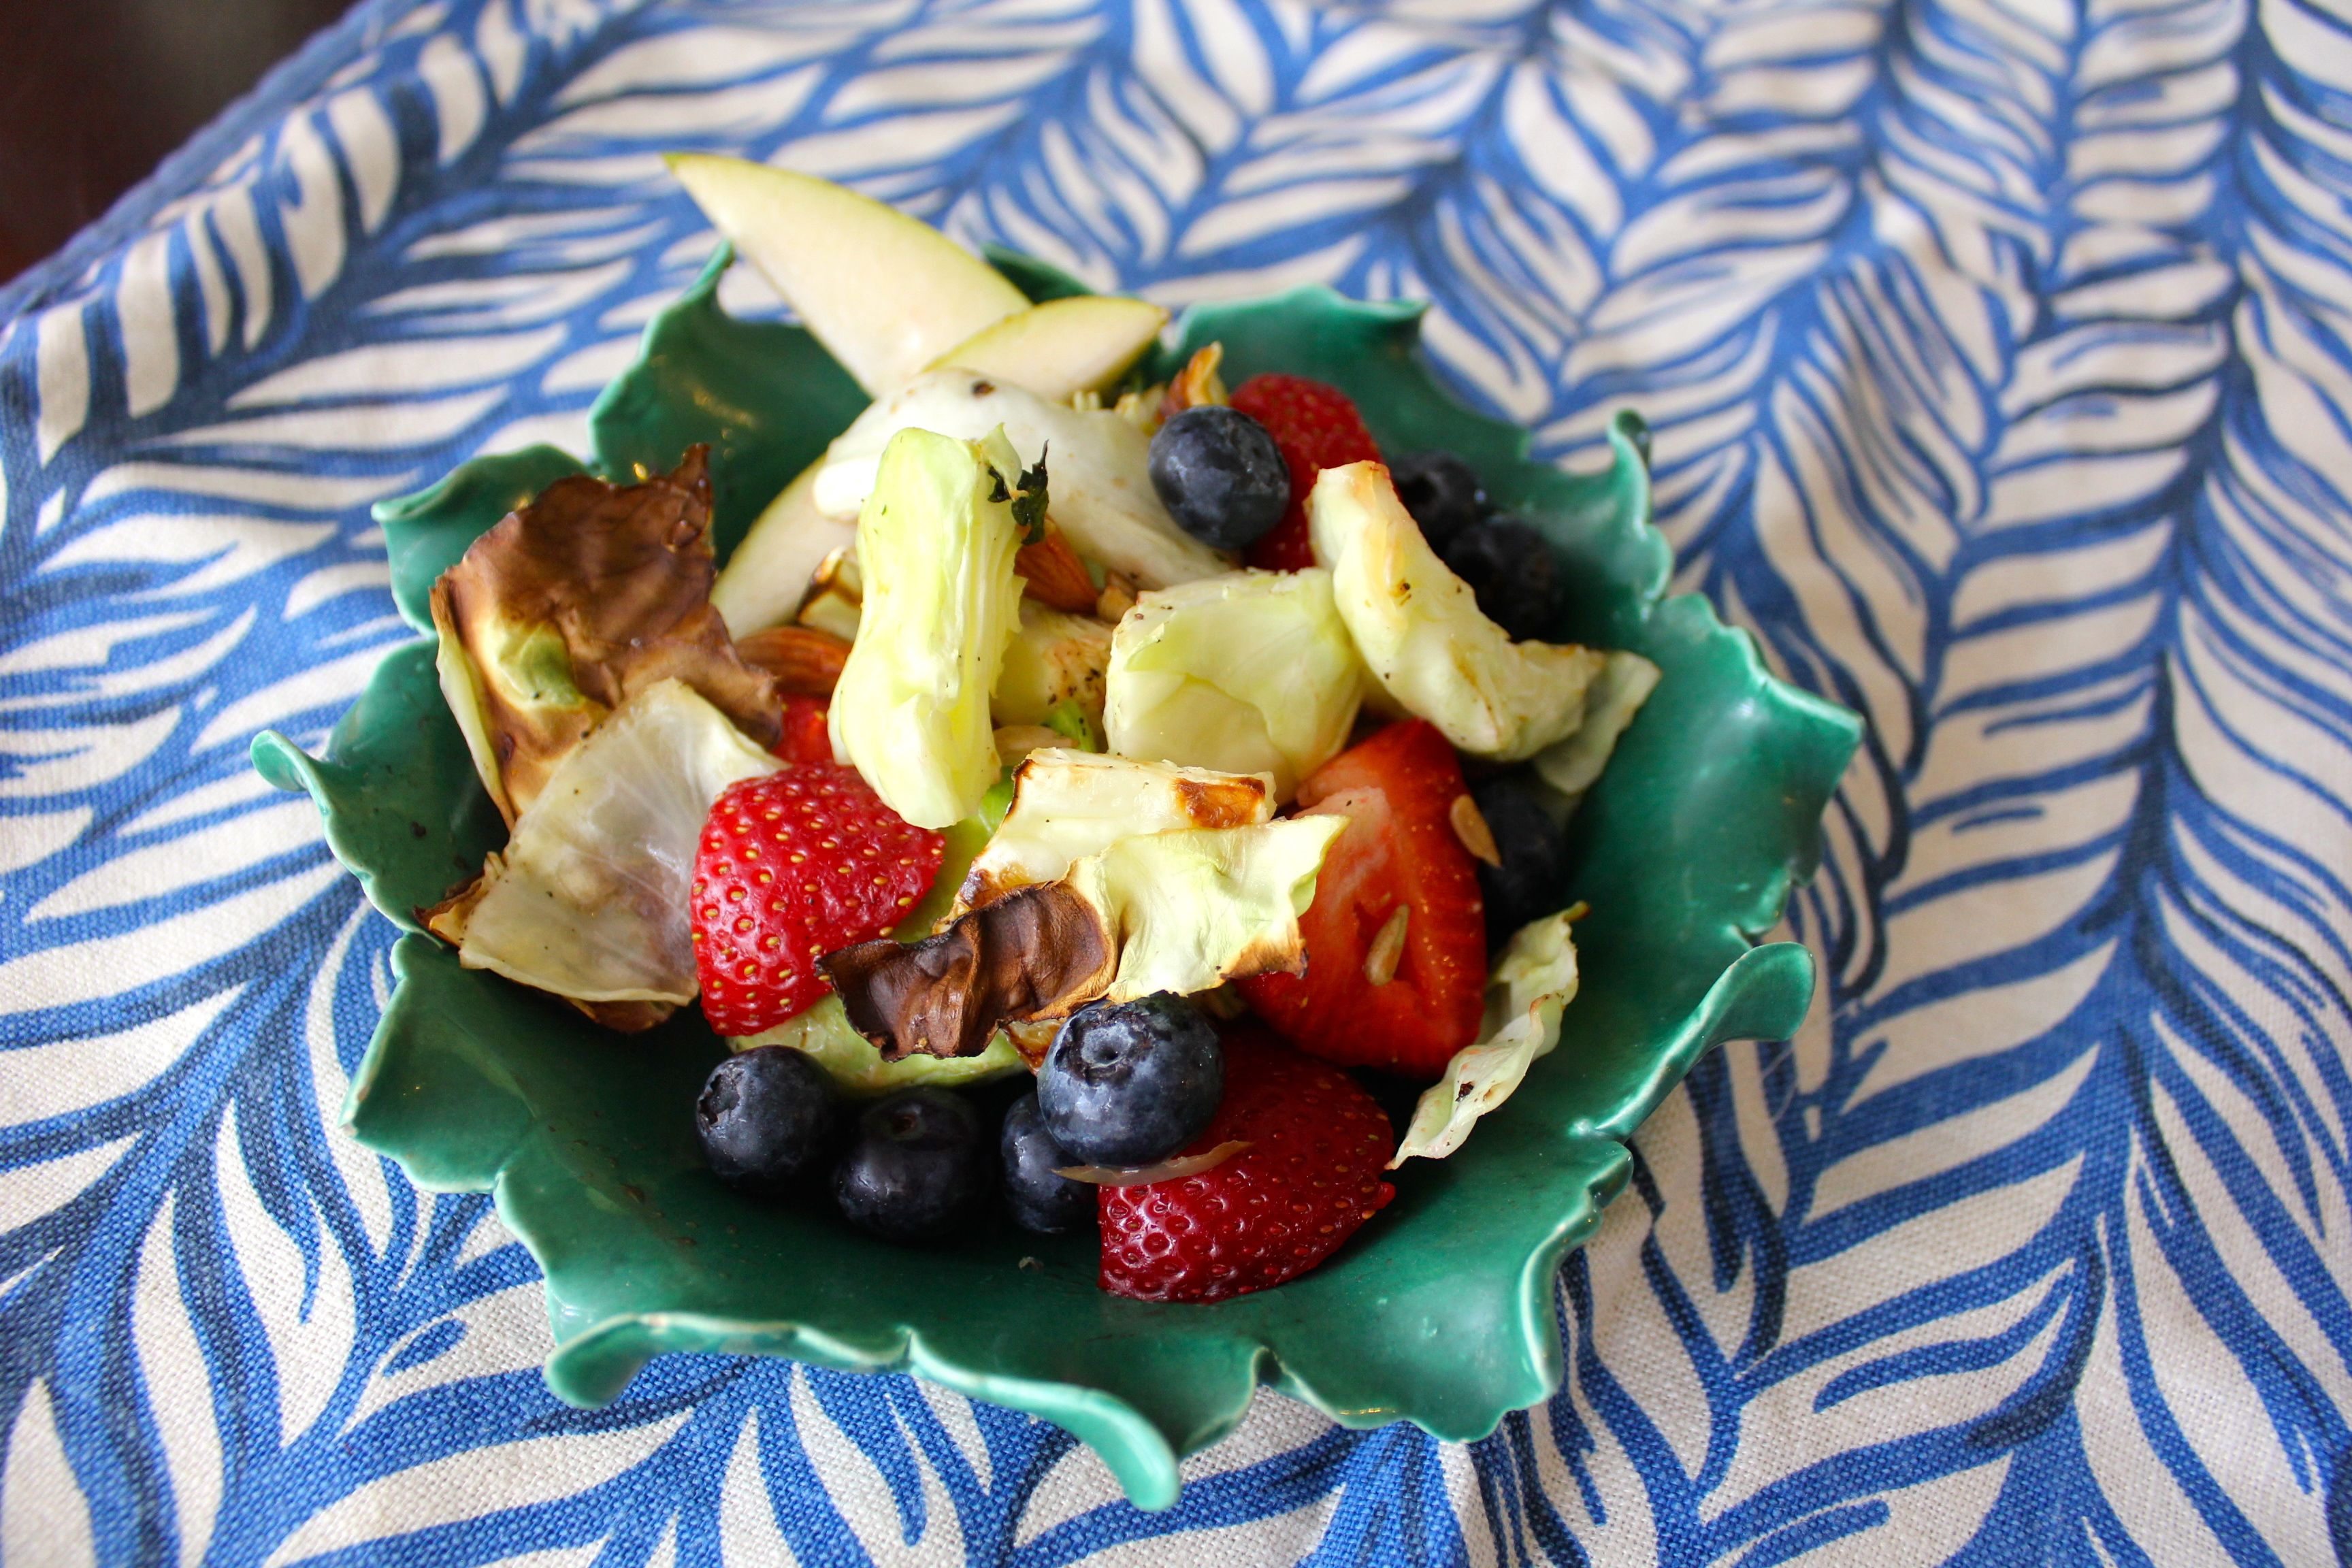 Sweet Summer Cabbage Salad SheJustGlows.com